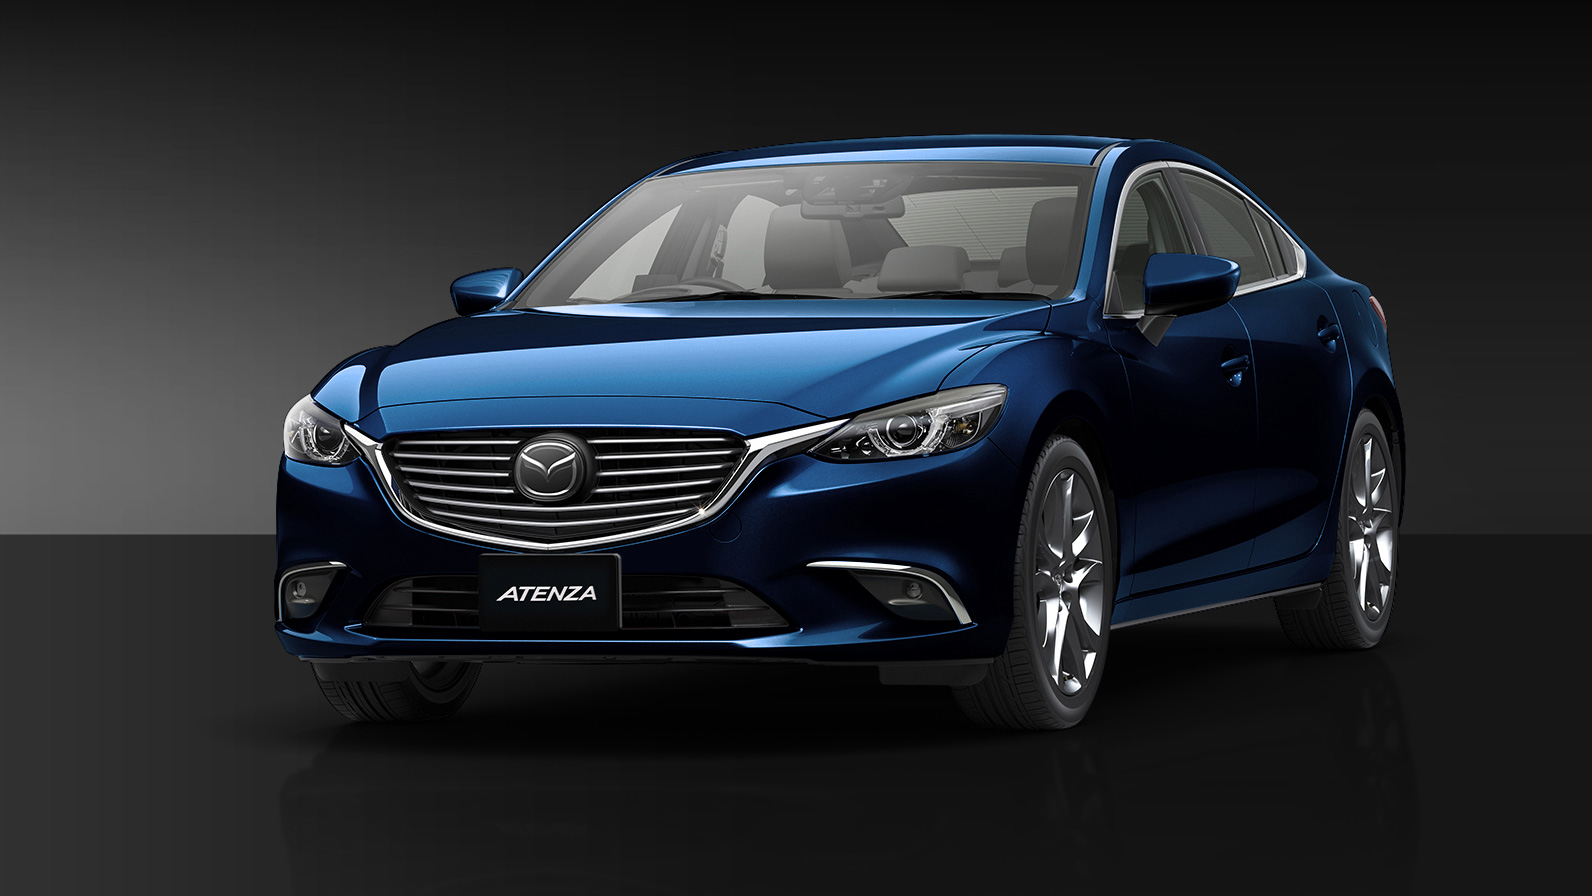 News : Oversteer 1/64 Mazda Atenza Sedan and Wagon | 829 Japan